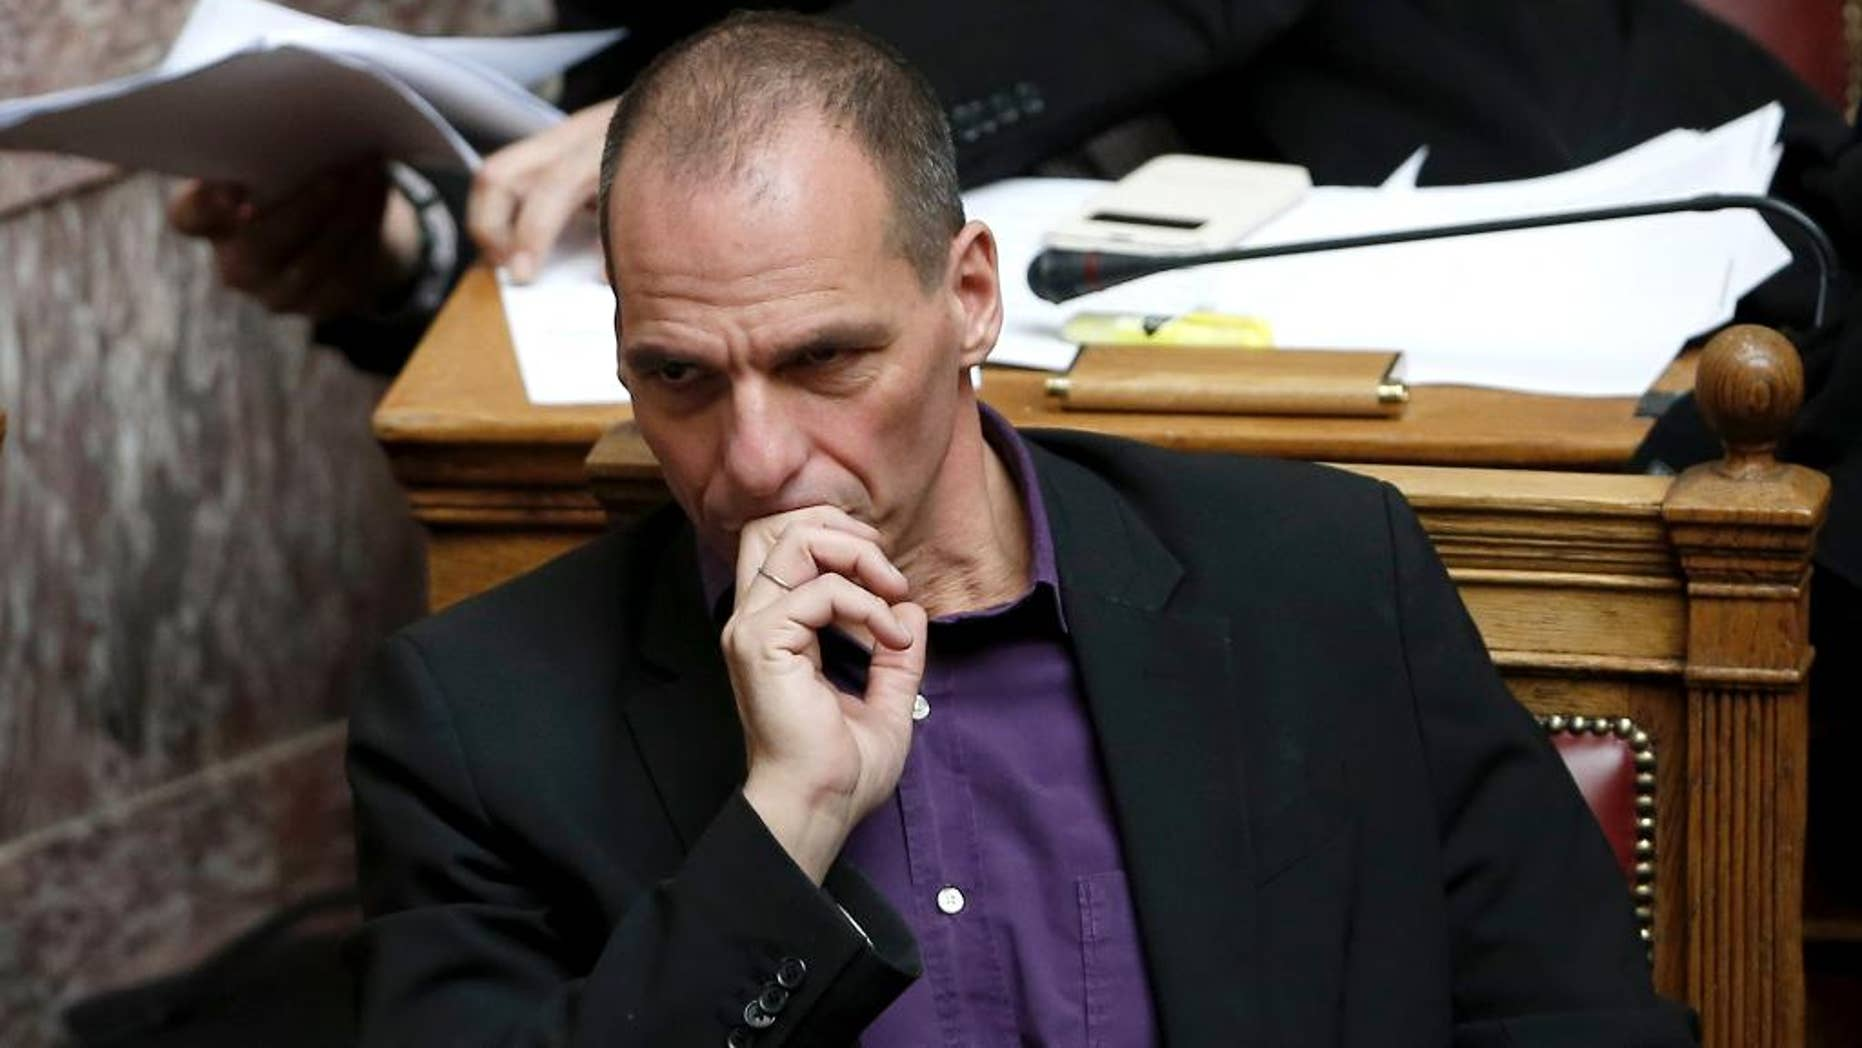 Greek Finance Minister Yanis Varoufakis attends a parliament session before the vote of an anti-poverty bill, the first piece of legislation from the left-wing government, in Athens, on Wednesday, March 18, 2015. Tsipras insisted Wednesday his government will honor an election promise to end budget austerity — a note of defiance ahead of an expected meeting with the leaders of Germany and France on the country's troubled bailout. (AP Photo/Petros Giannakouris)